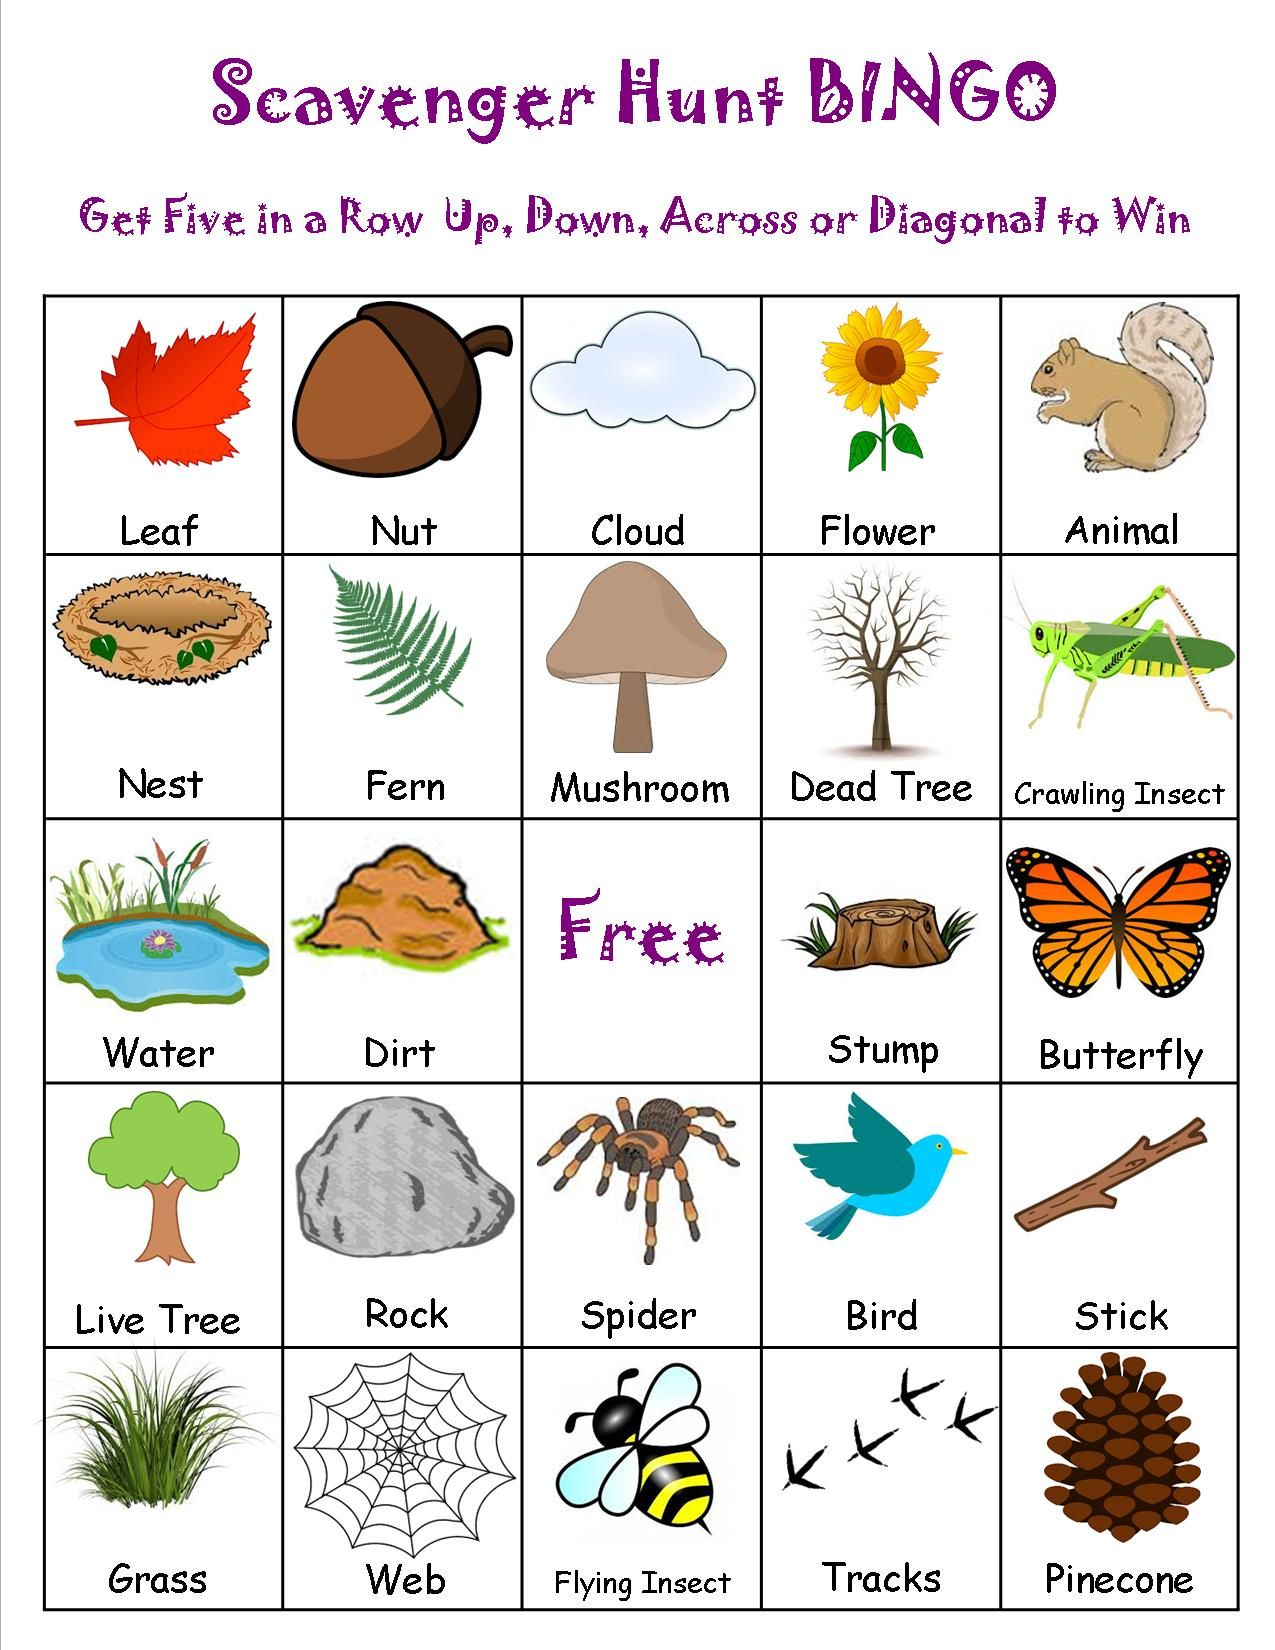 Scavenger Hunt Bingo Camping Pinterest Camping and